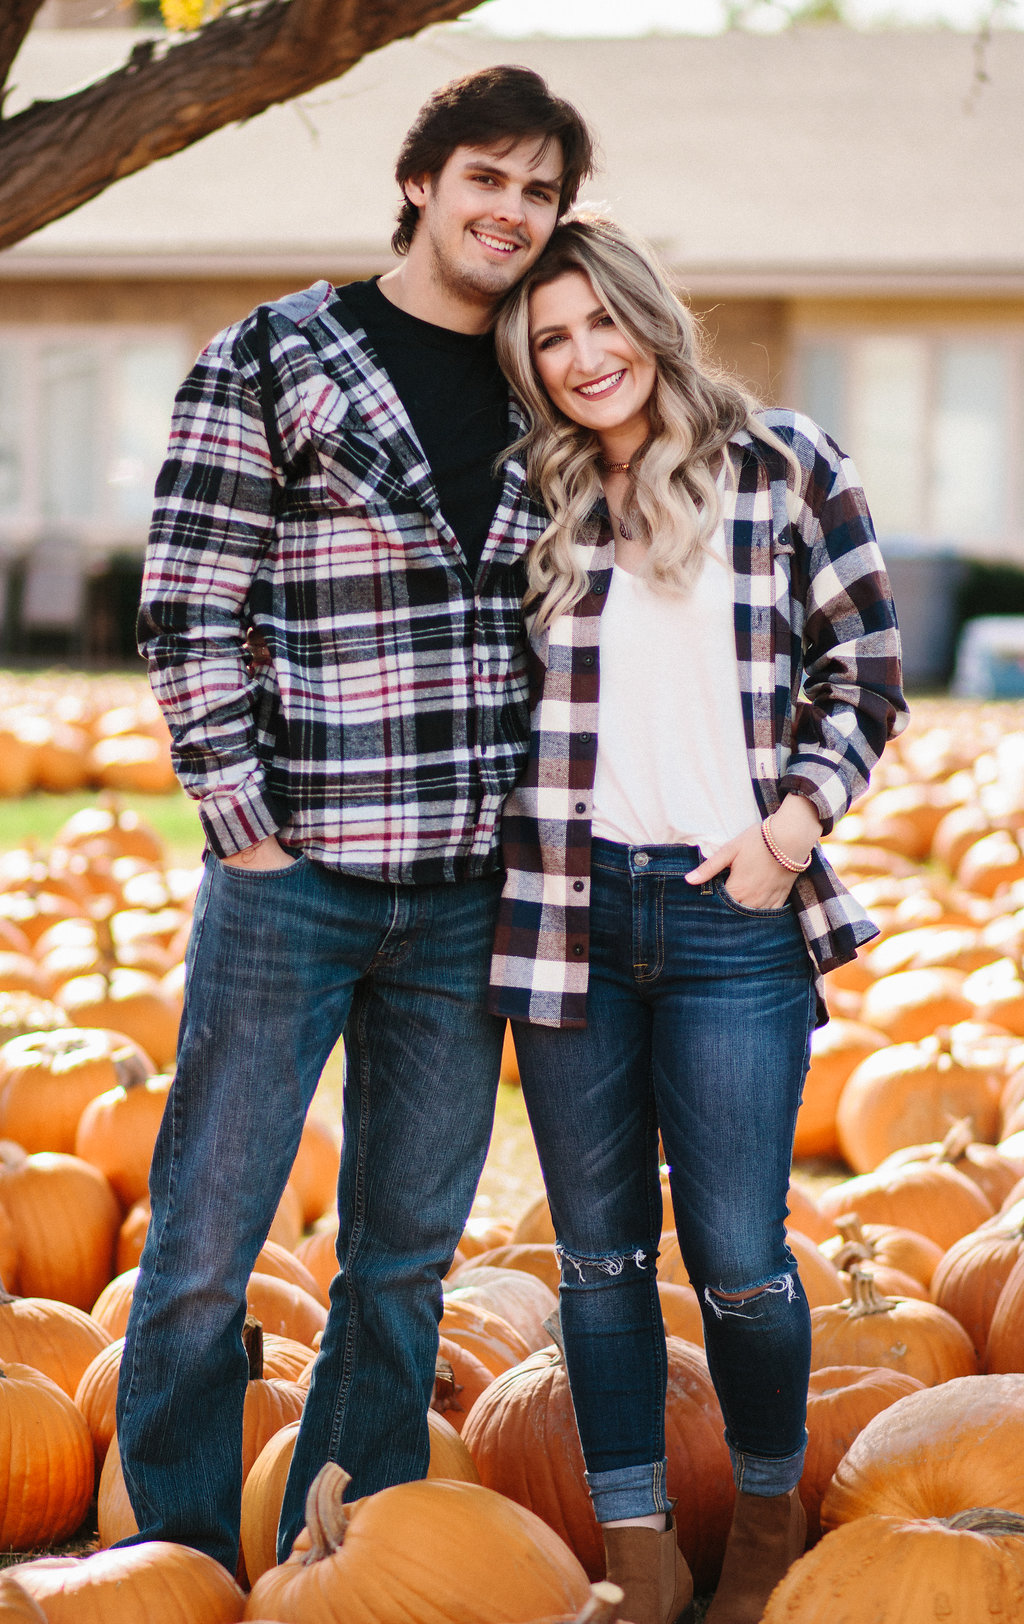 Flannel Season   His & Her   Texas Tech college students   Audrey Madison Stowe a fashion and lifestyle blogger